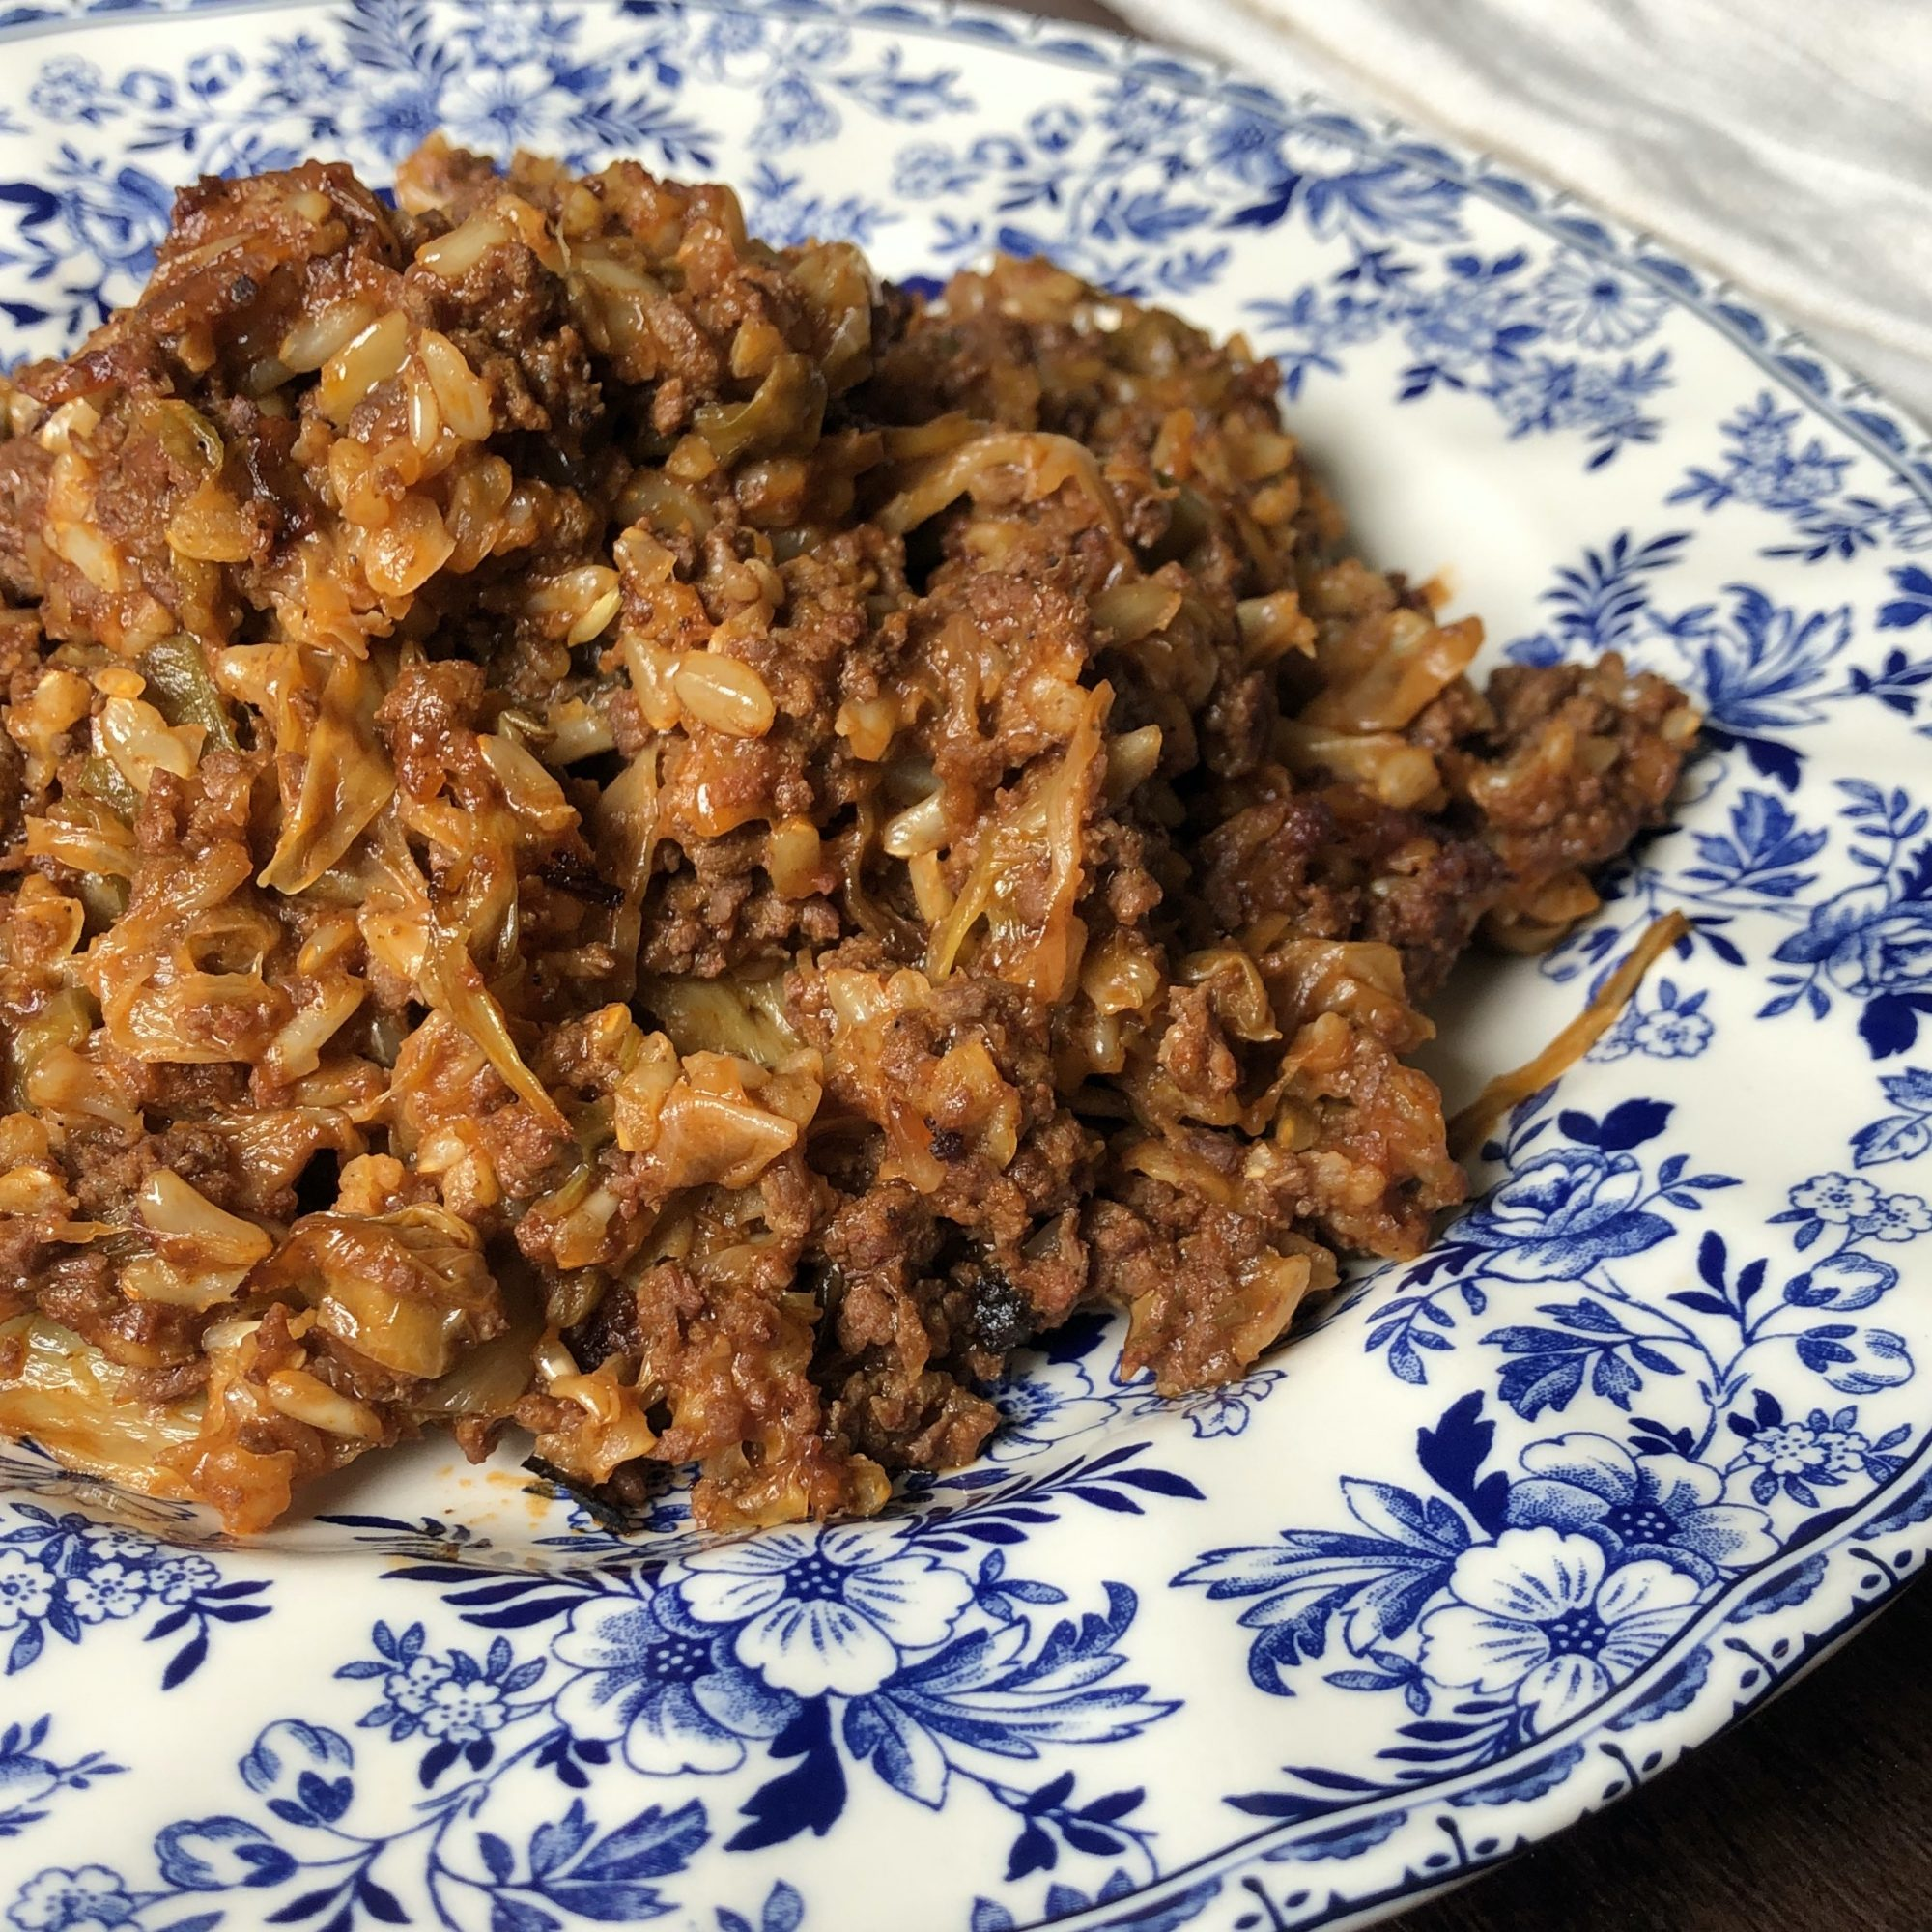 Cabbage Roll Casserole on a blue and white plate